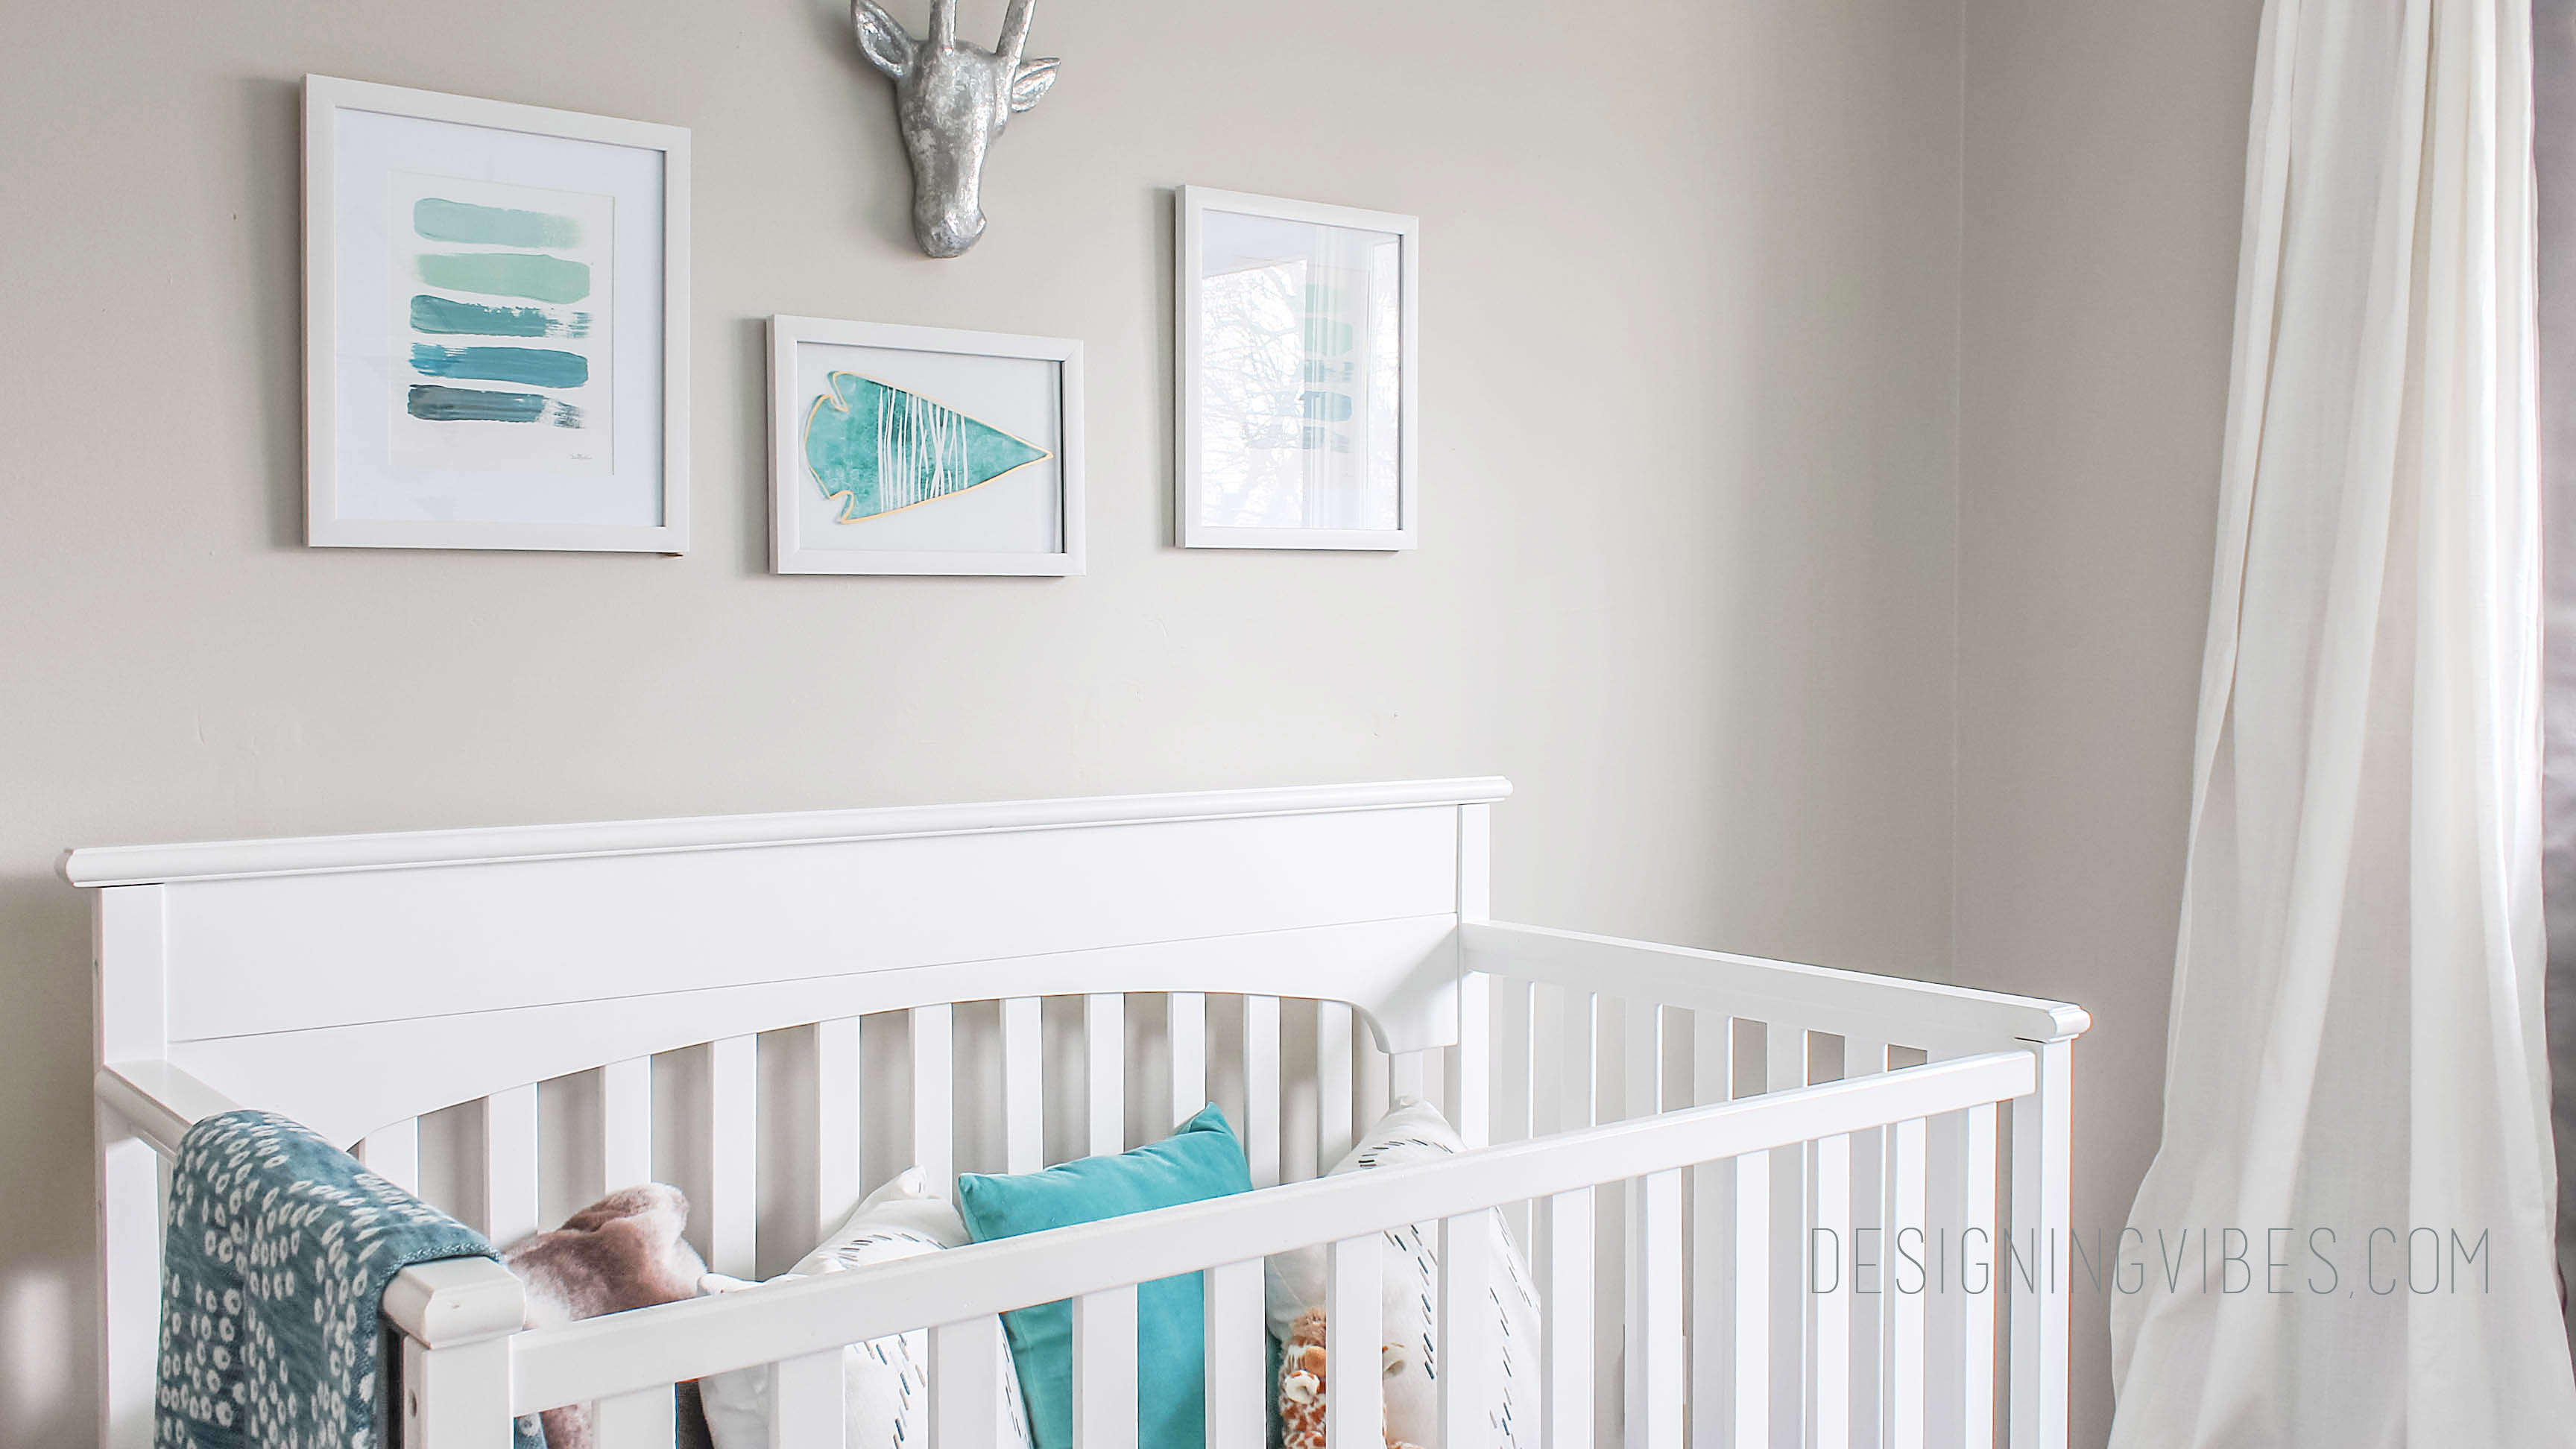 Tribal Rustic Nursery for my Baby Boy: Reveal - Designing Vibes ...